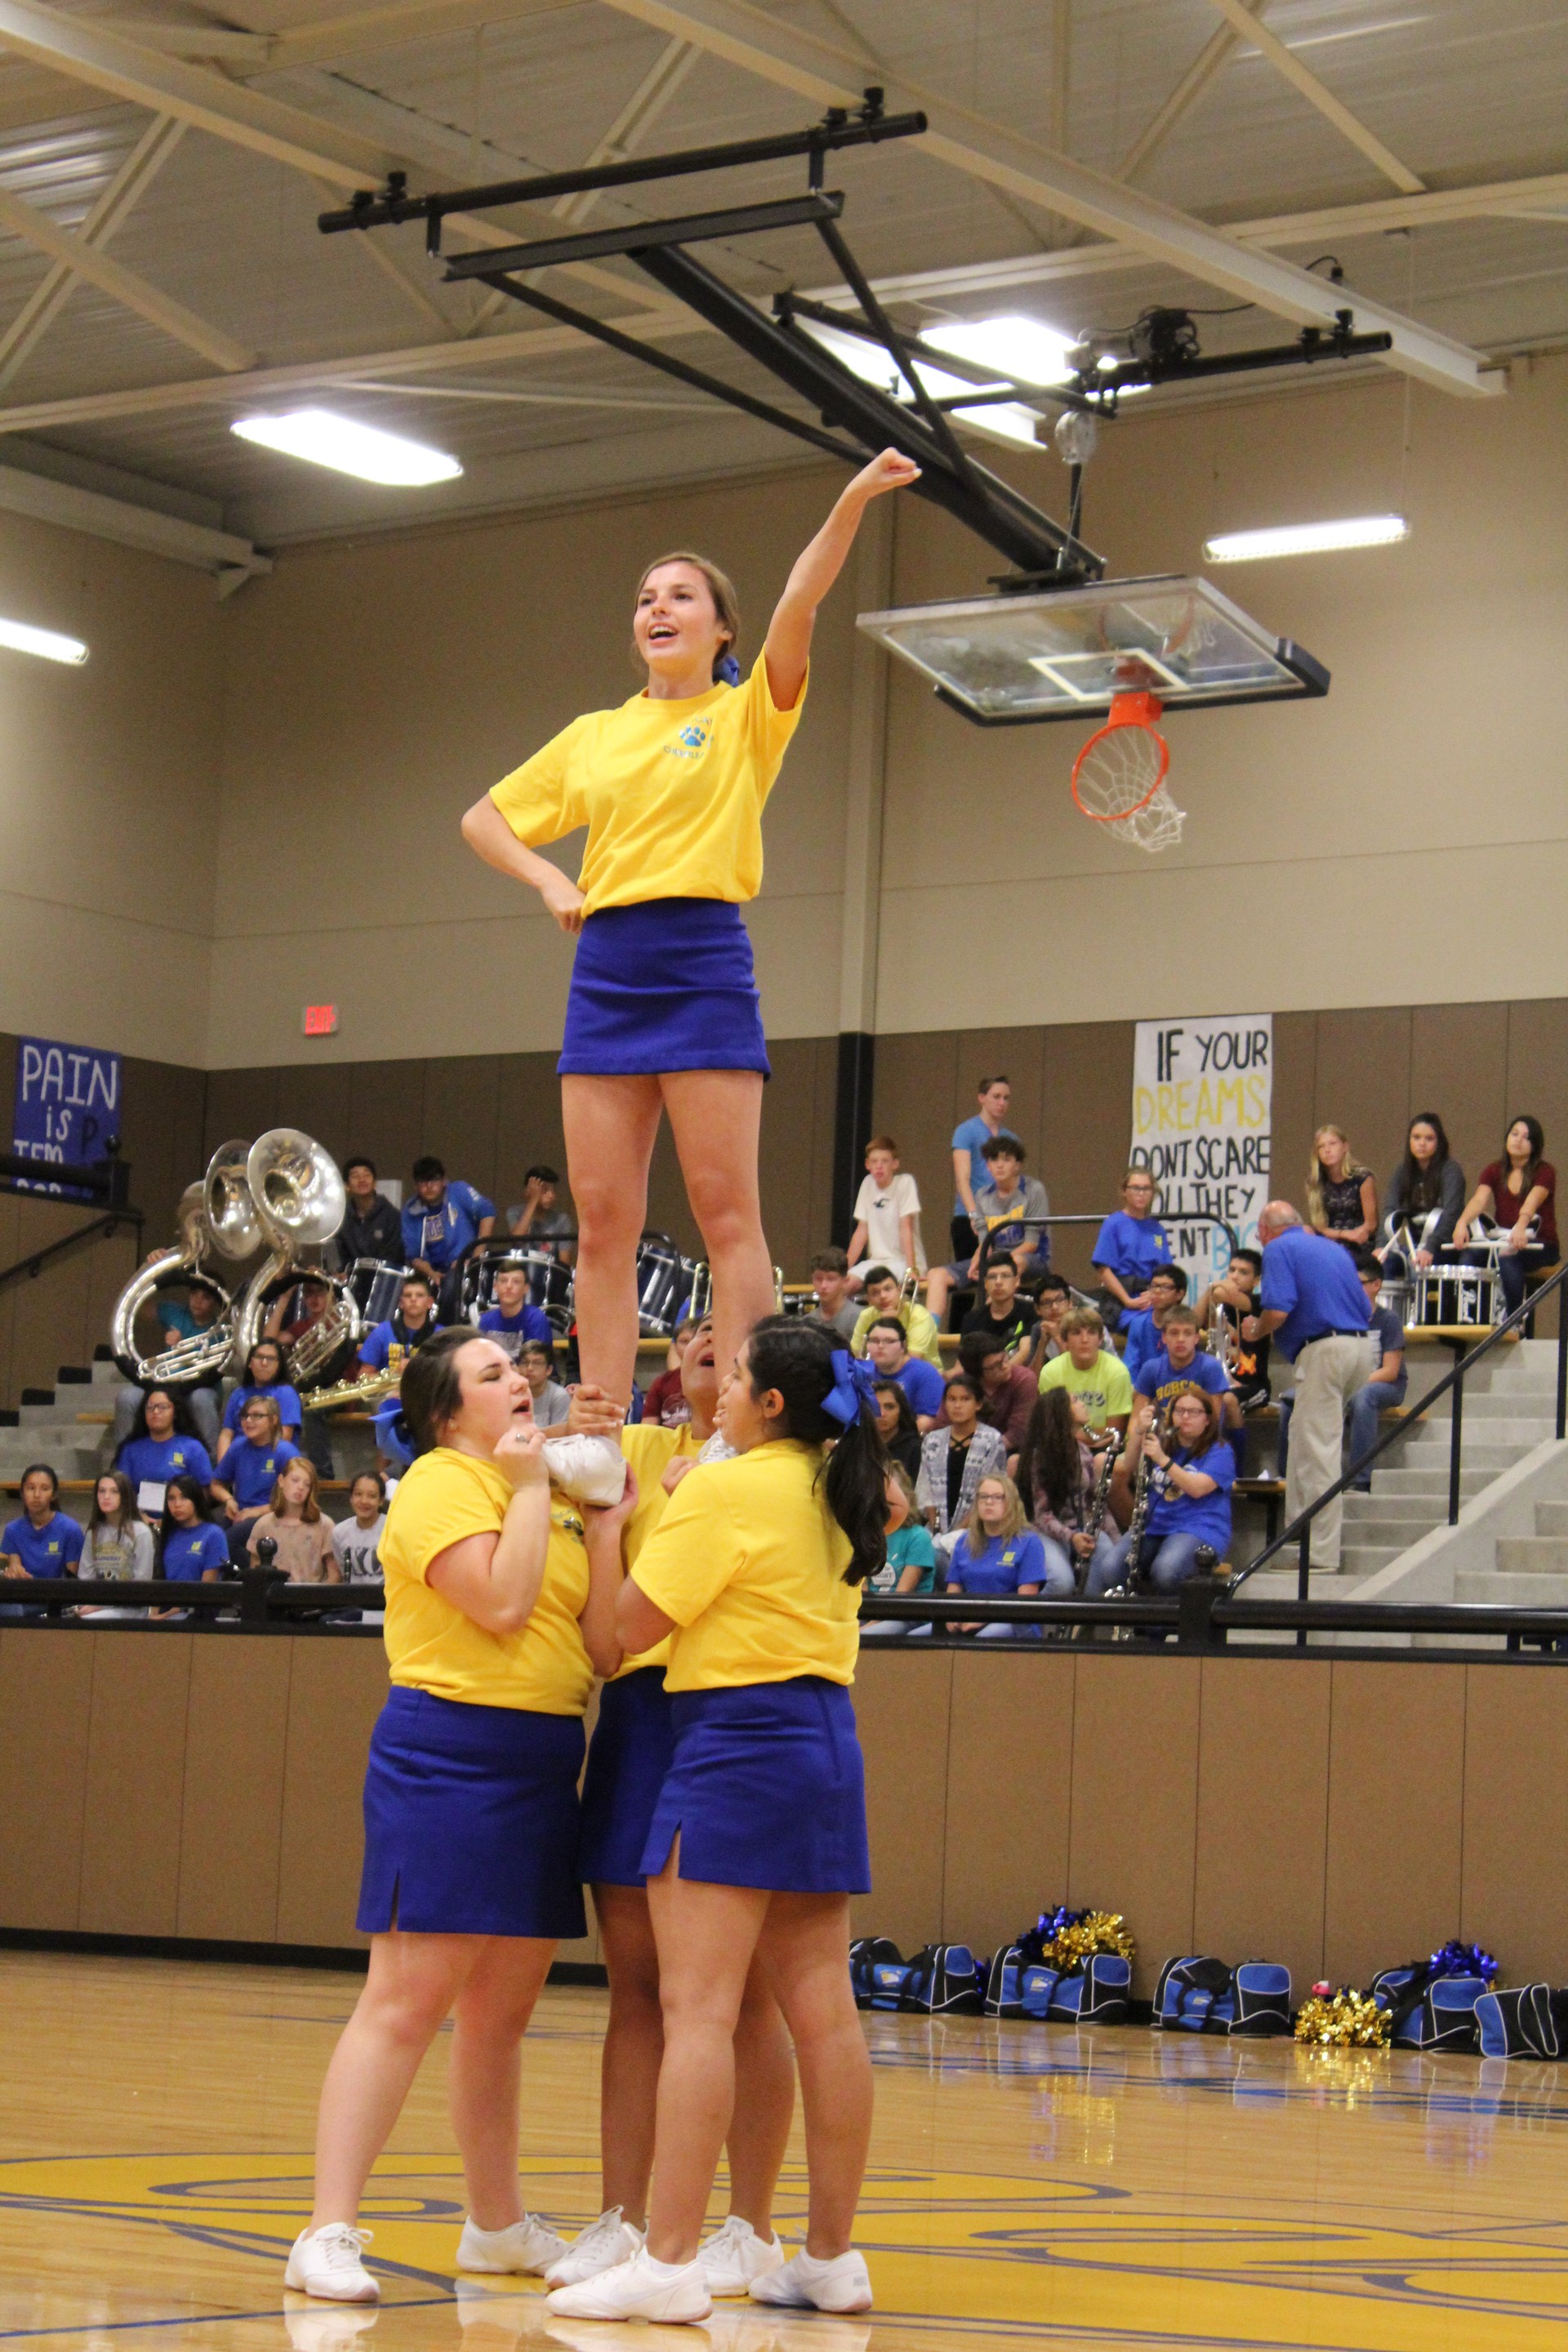 Varsity Cheerleaders Cheering on Bobcats with a Stunt